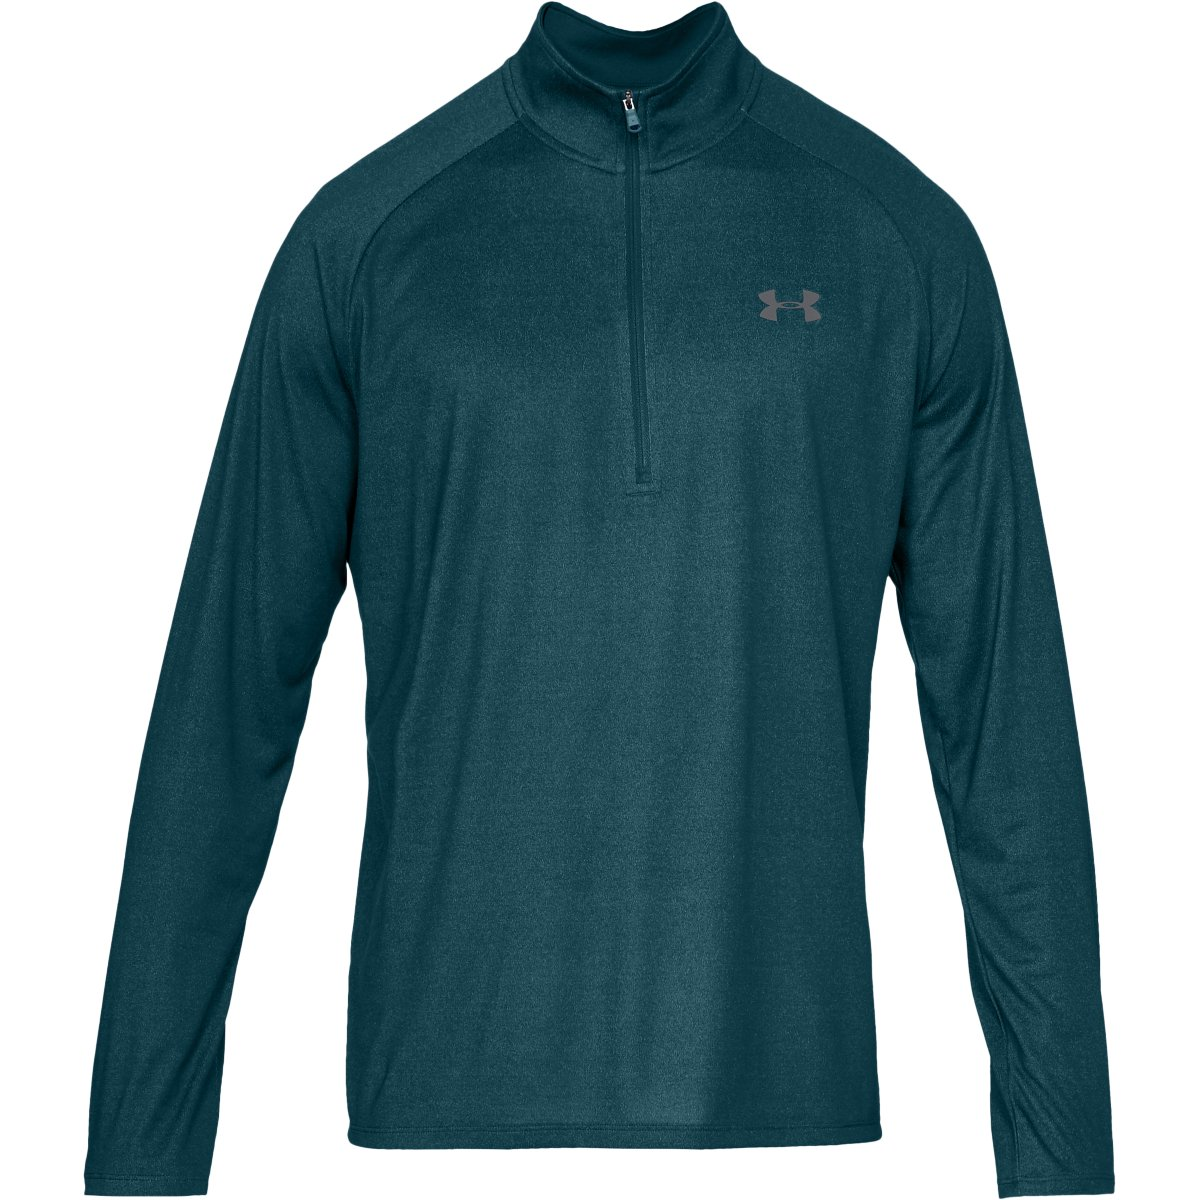 Under Armour Tech 1/2 Zip Long Sleeve Gym Top | Amour